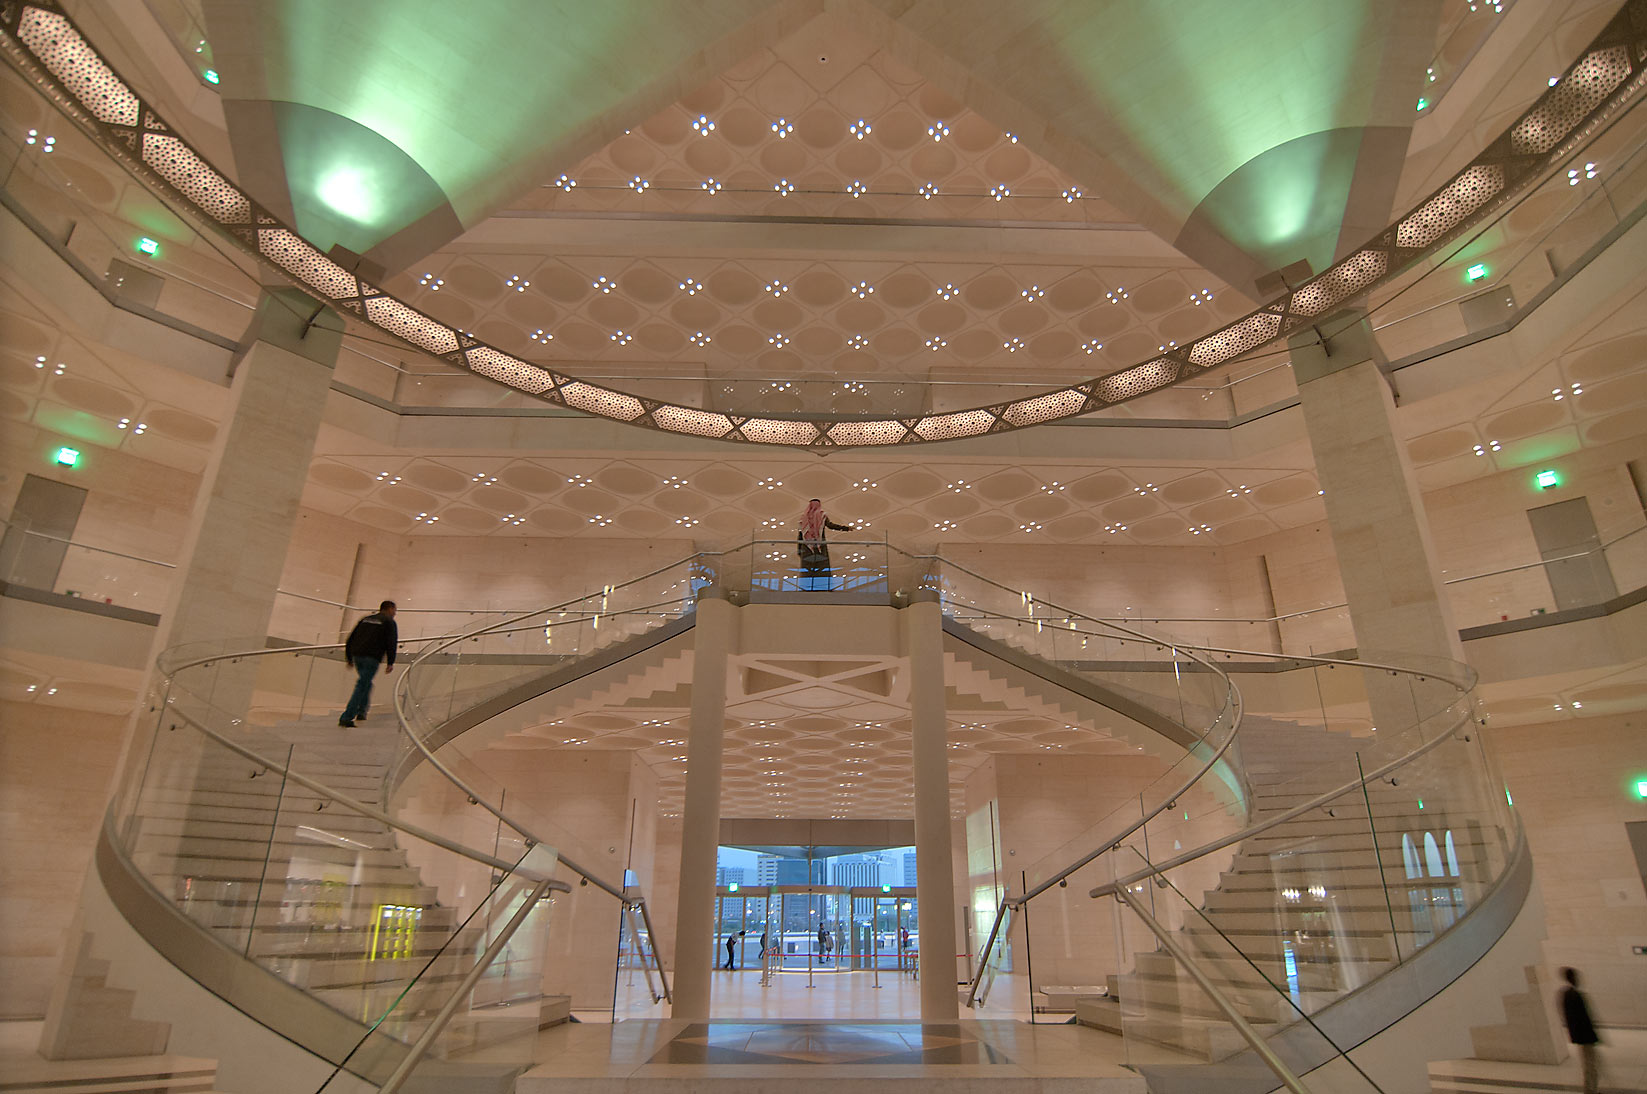 Grand staircase and perforated chandelier of Museum of Islamic Art. Doha, Qatar